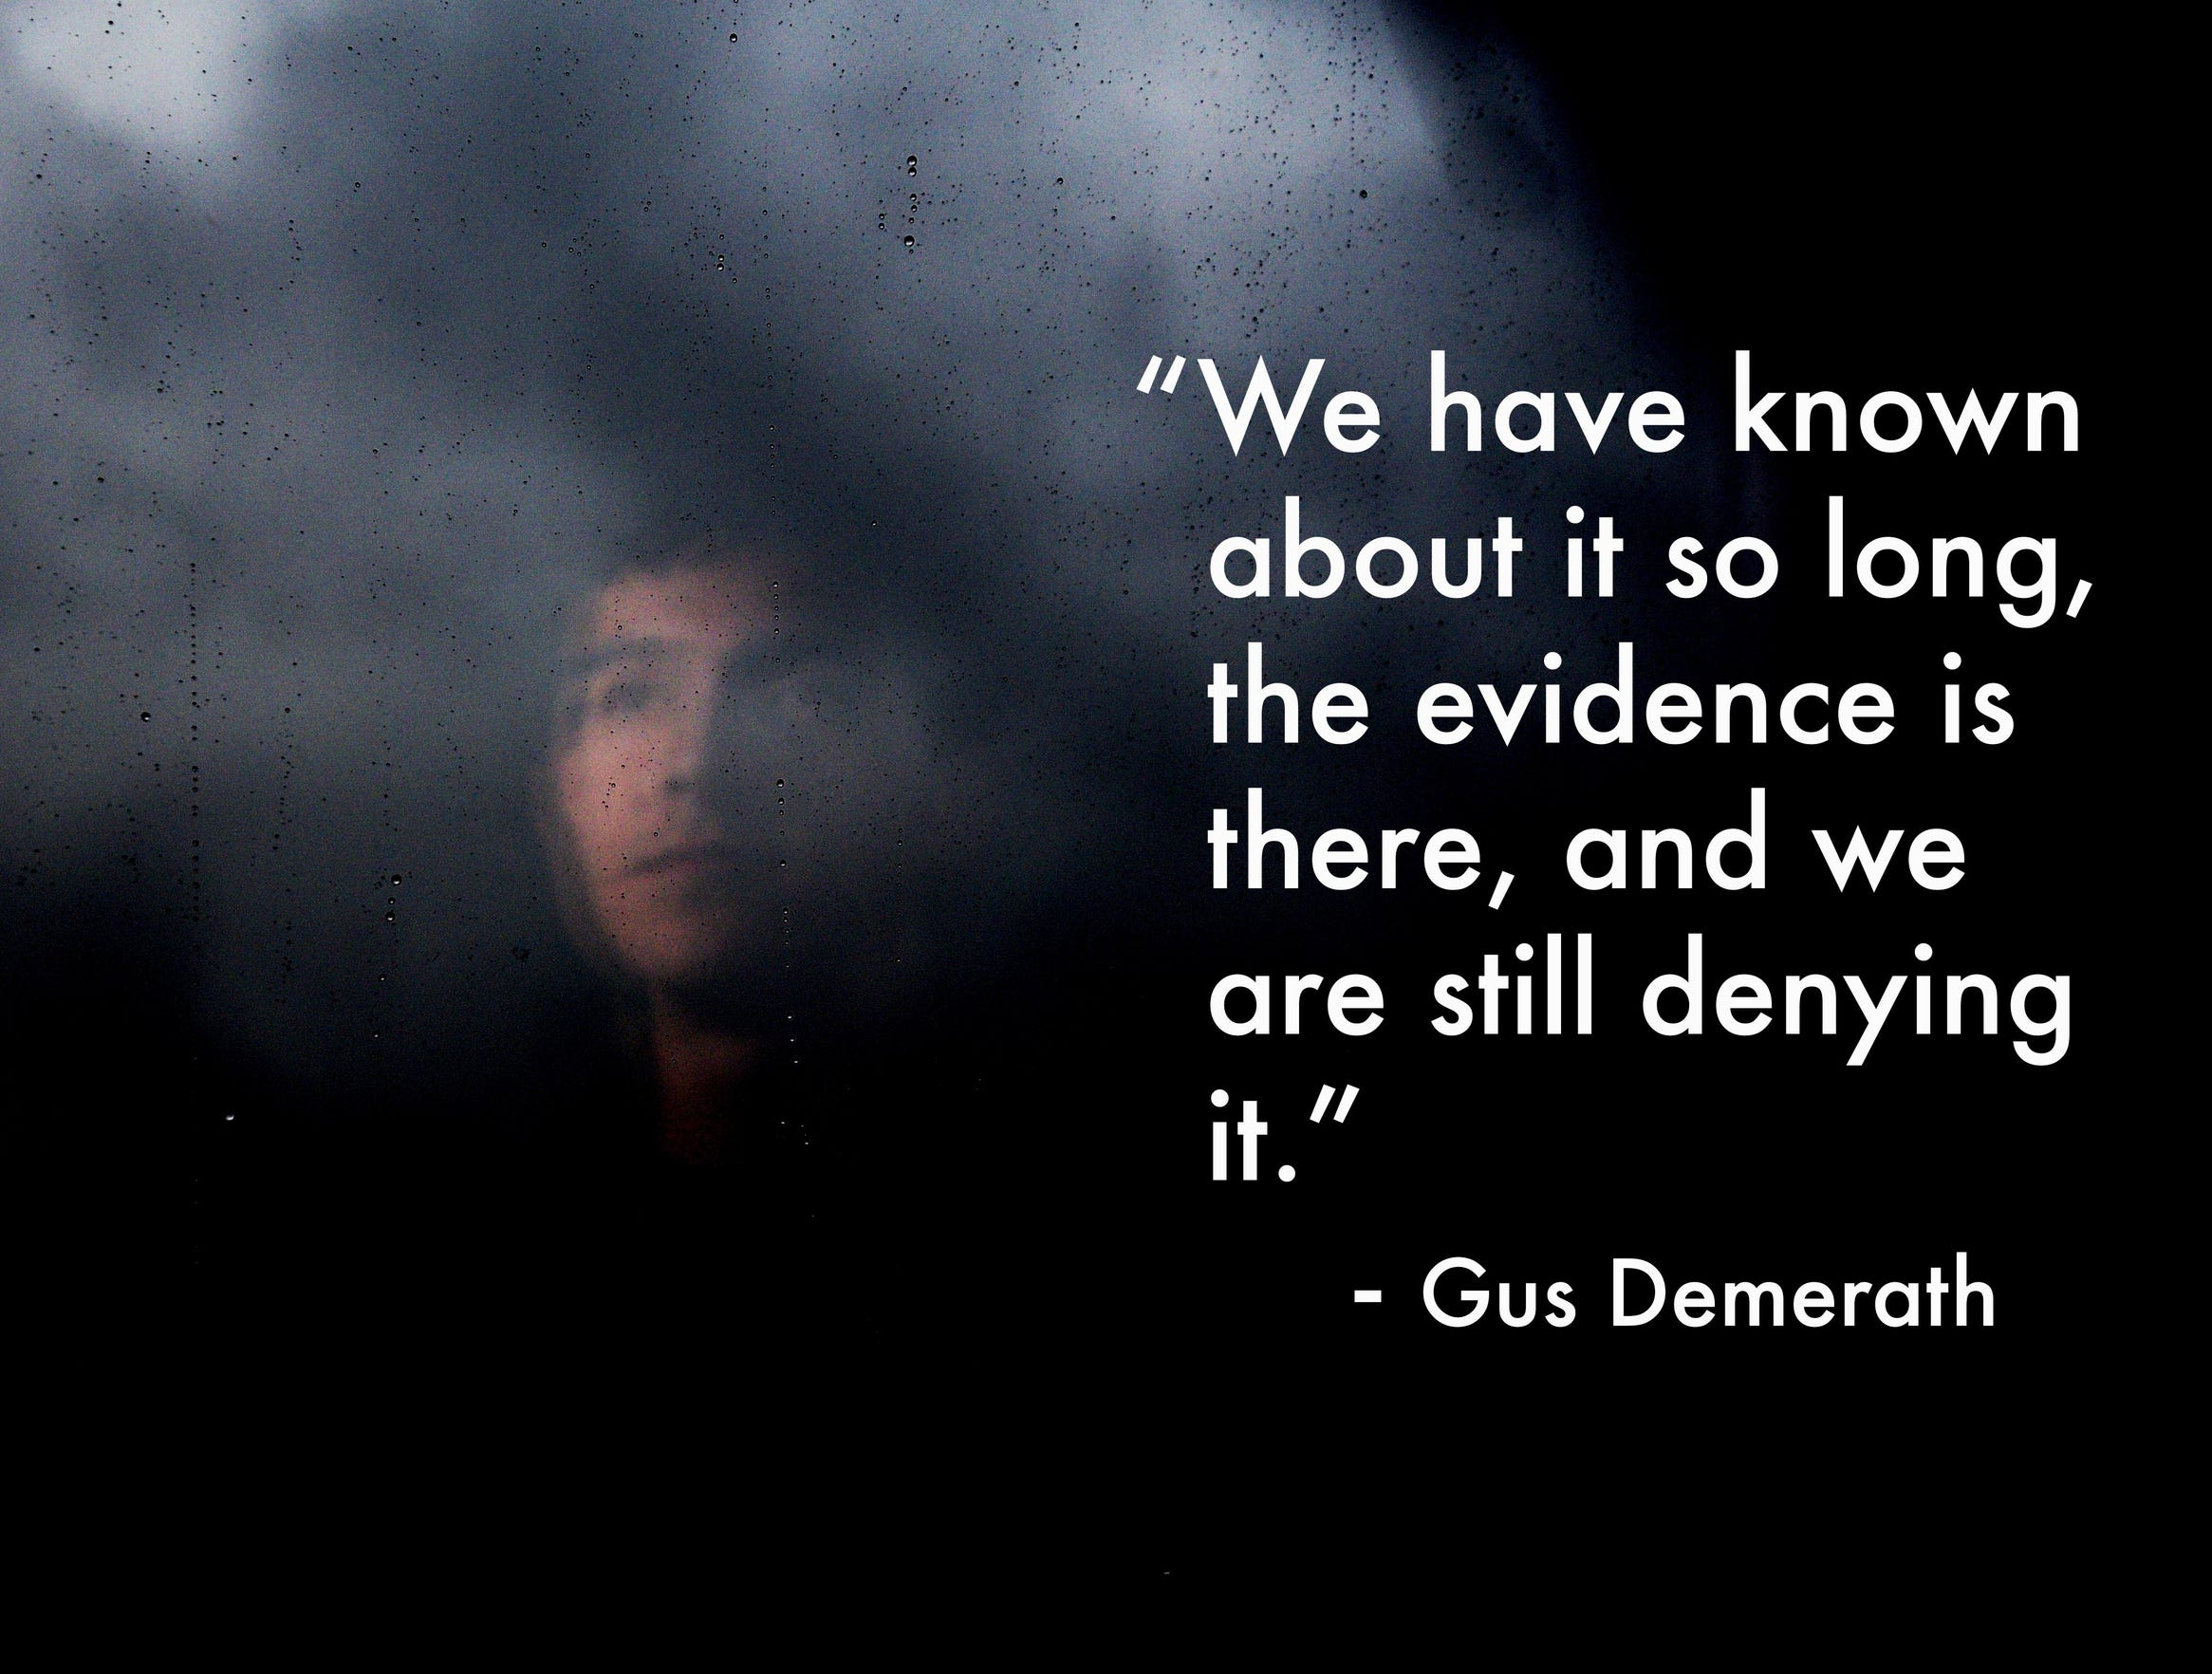 """We have known about it so long, the evidence is there, and we are still denying it."" - Gus Demerath"